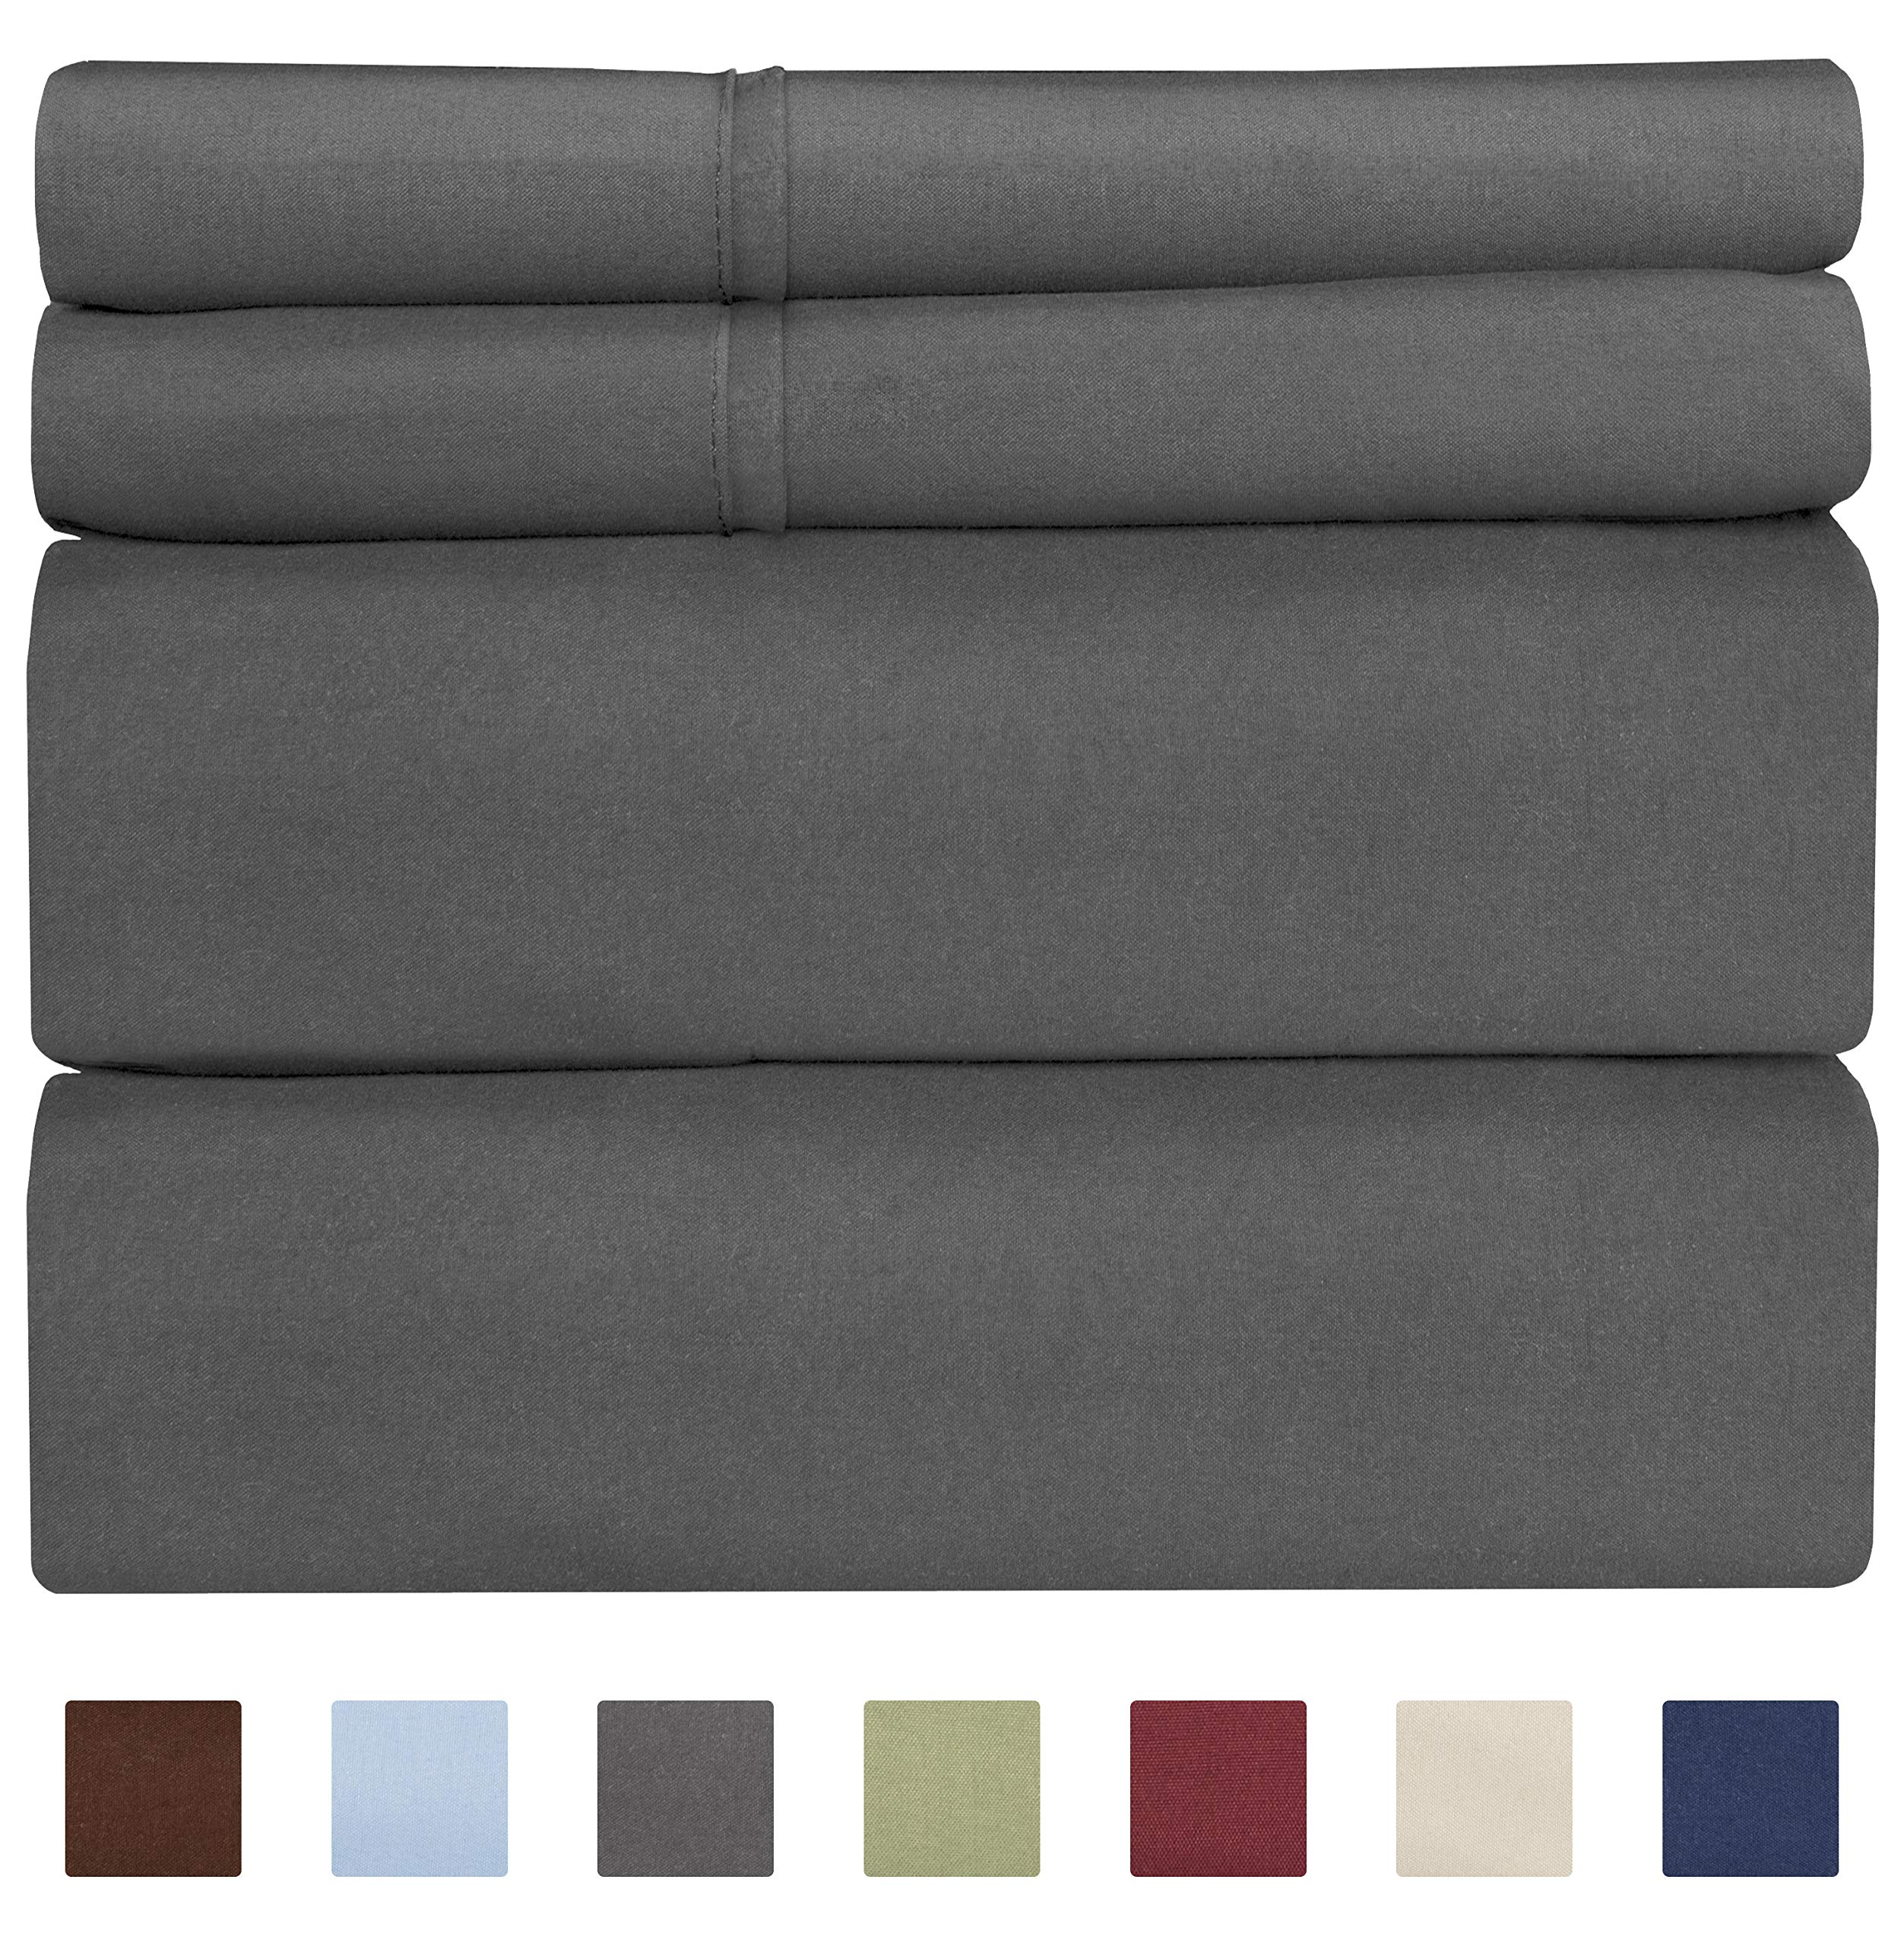 CGK Unlimited Cotton Sheets - Queen Size Bed Sheets - 400 Thread Count - 100% Cotton - Long Staple - Grey Sheets